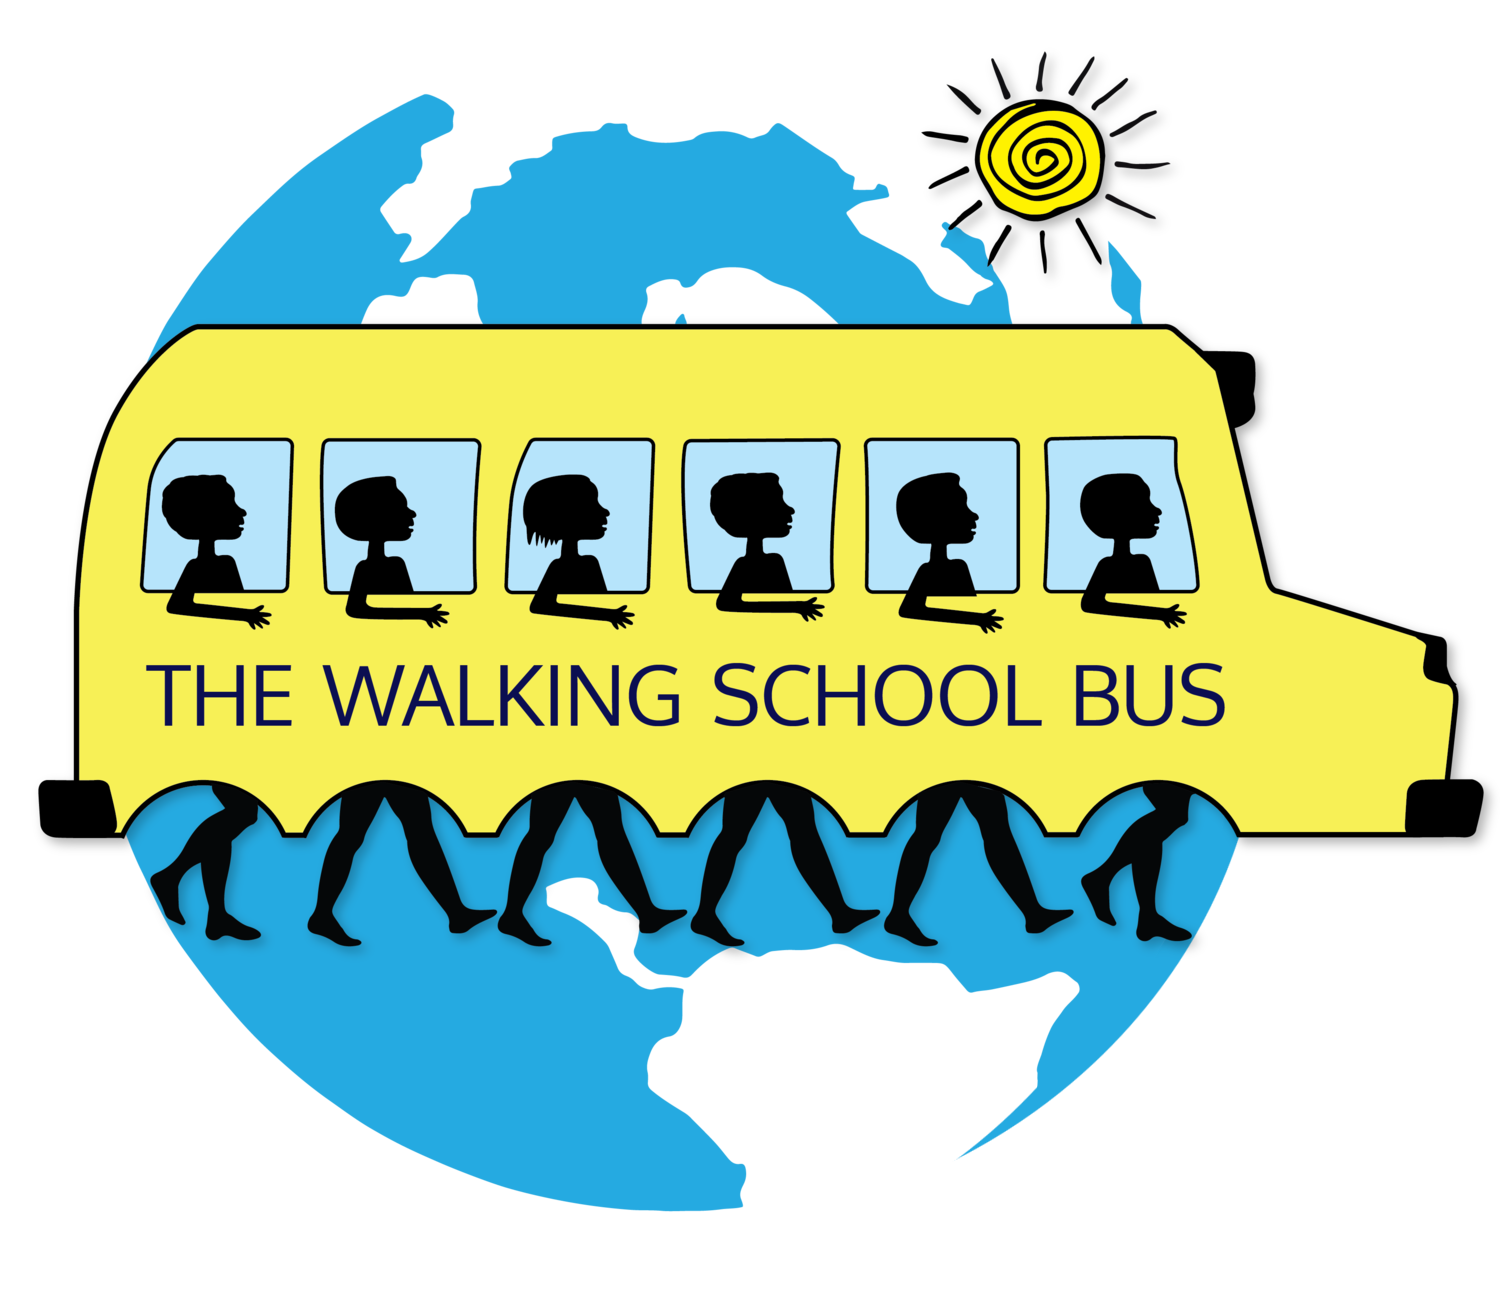 The Walking School Bus